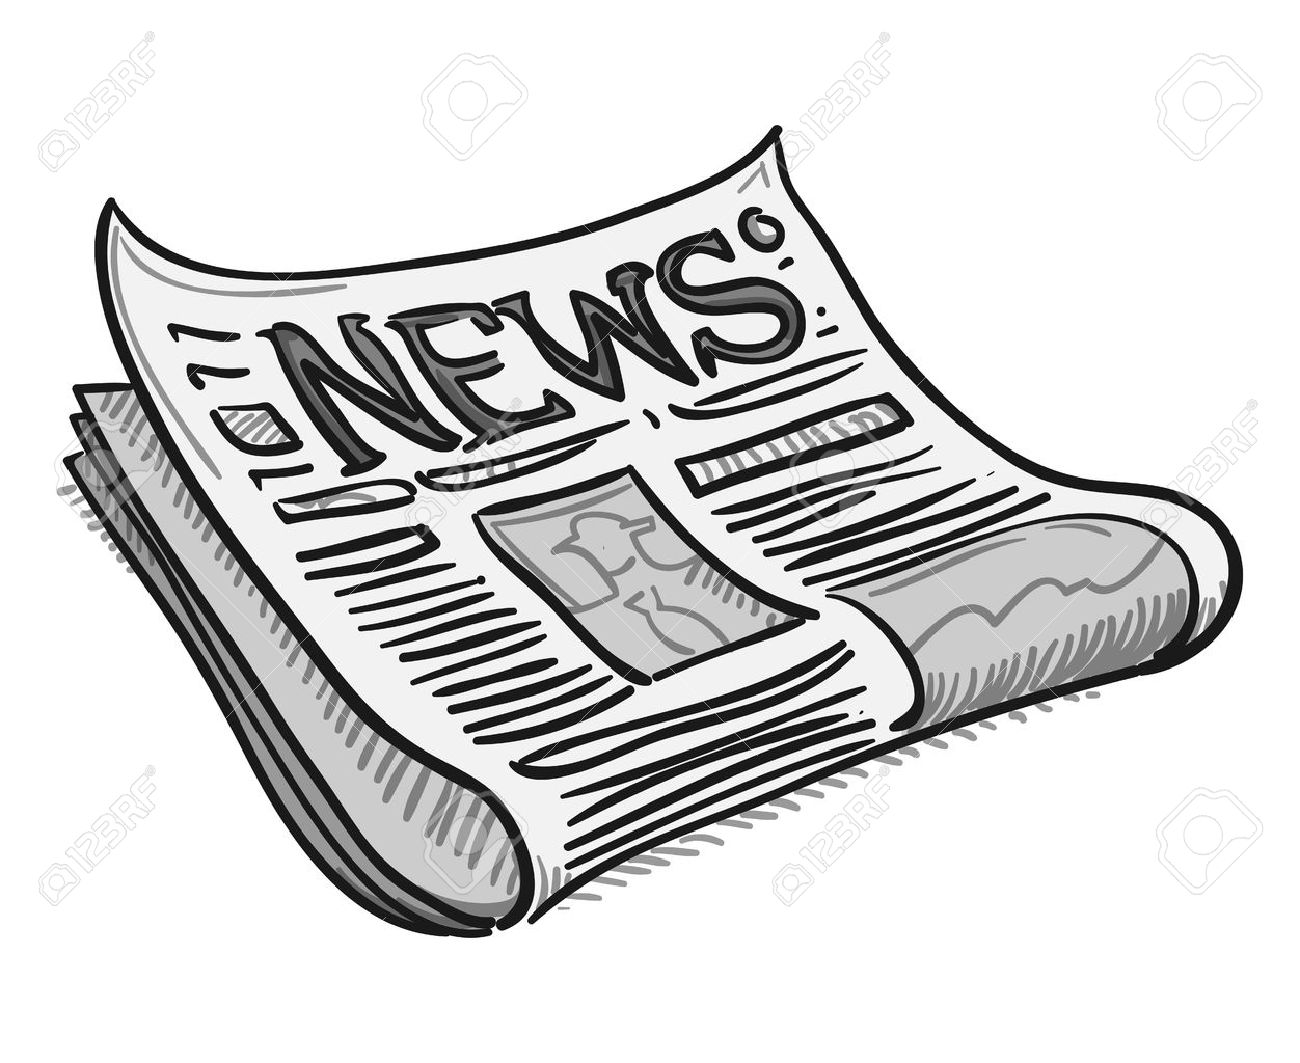 Image result for newspaper